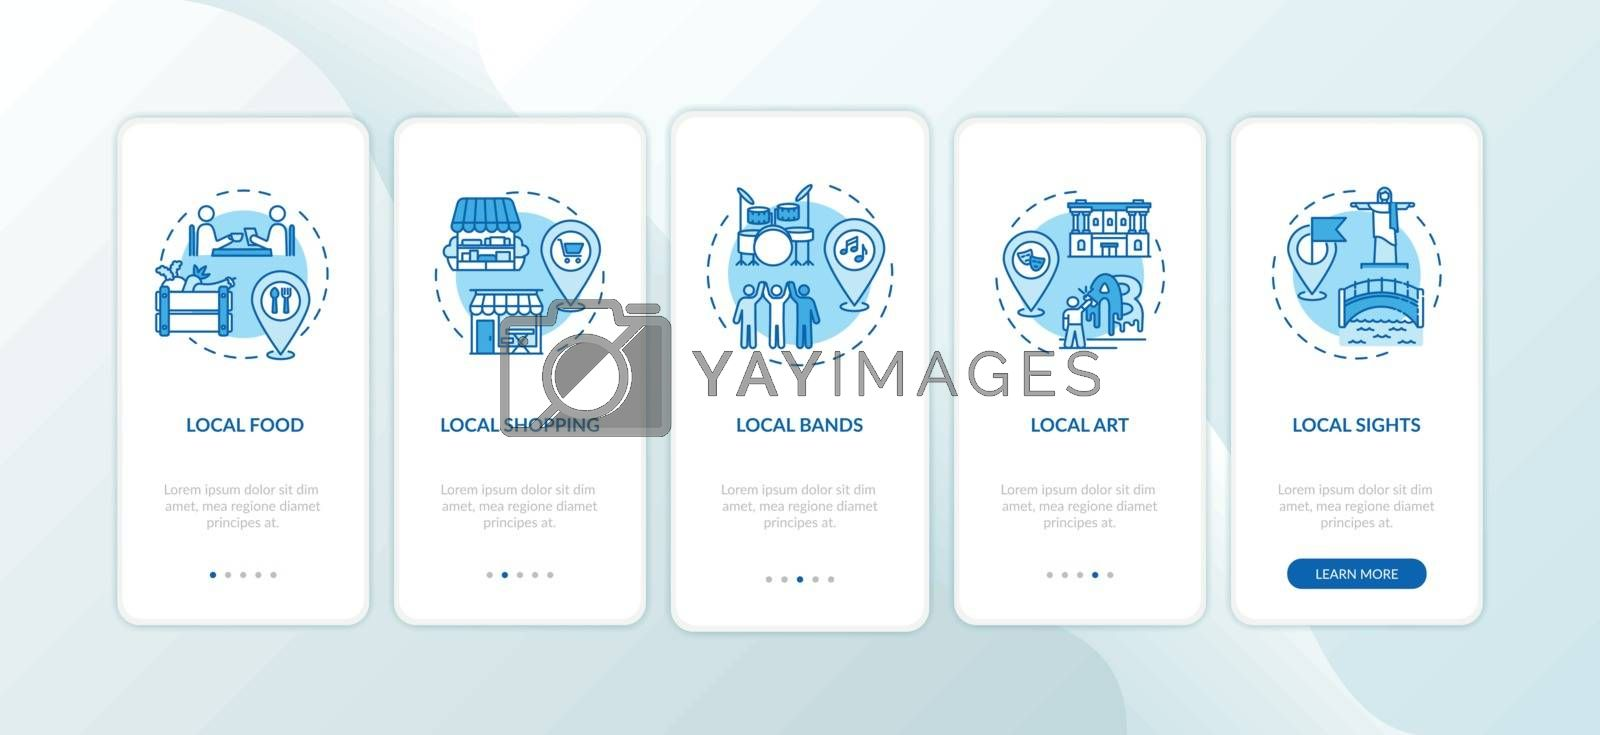 Local tourism elements onboarding mobile app page screen with concepts. Local food and local shopping. Walkthrough 5 steps graphic instructions. UI vector template with RGB color illustrations